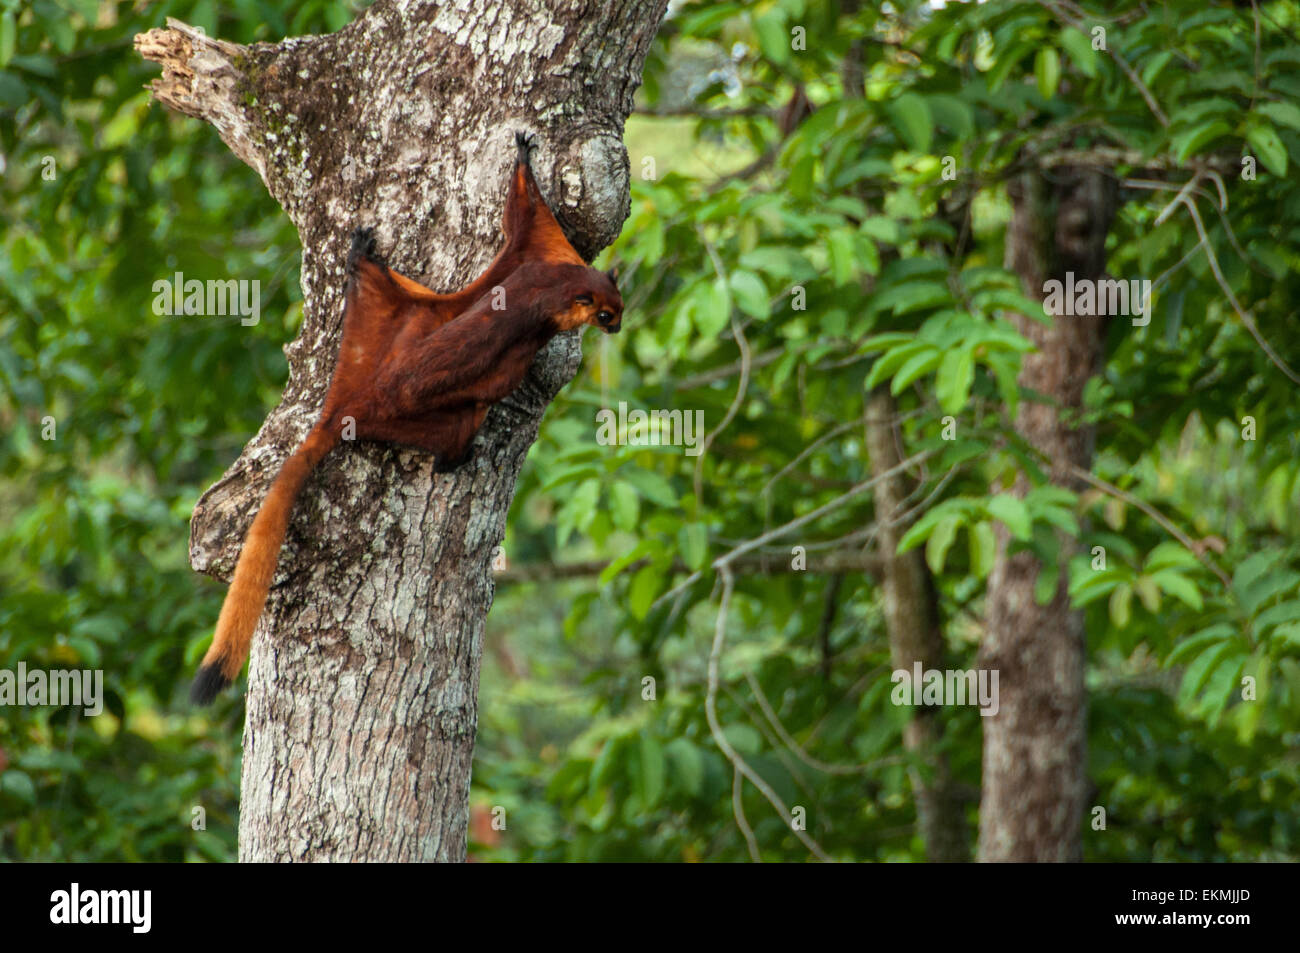 red-flying-squirrel-ready-to-fly-off-from-a-jungle-tree-sabah-borneo-EKMJJD.jpg